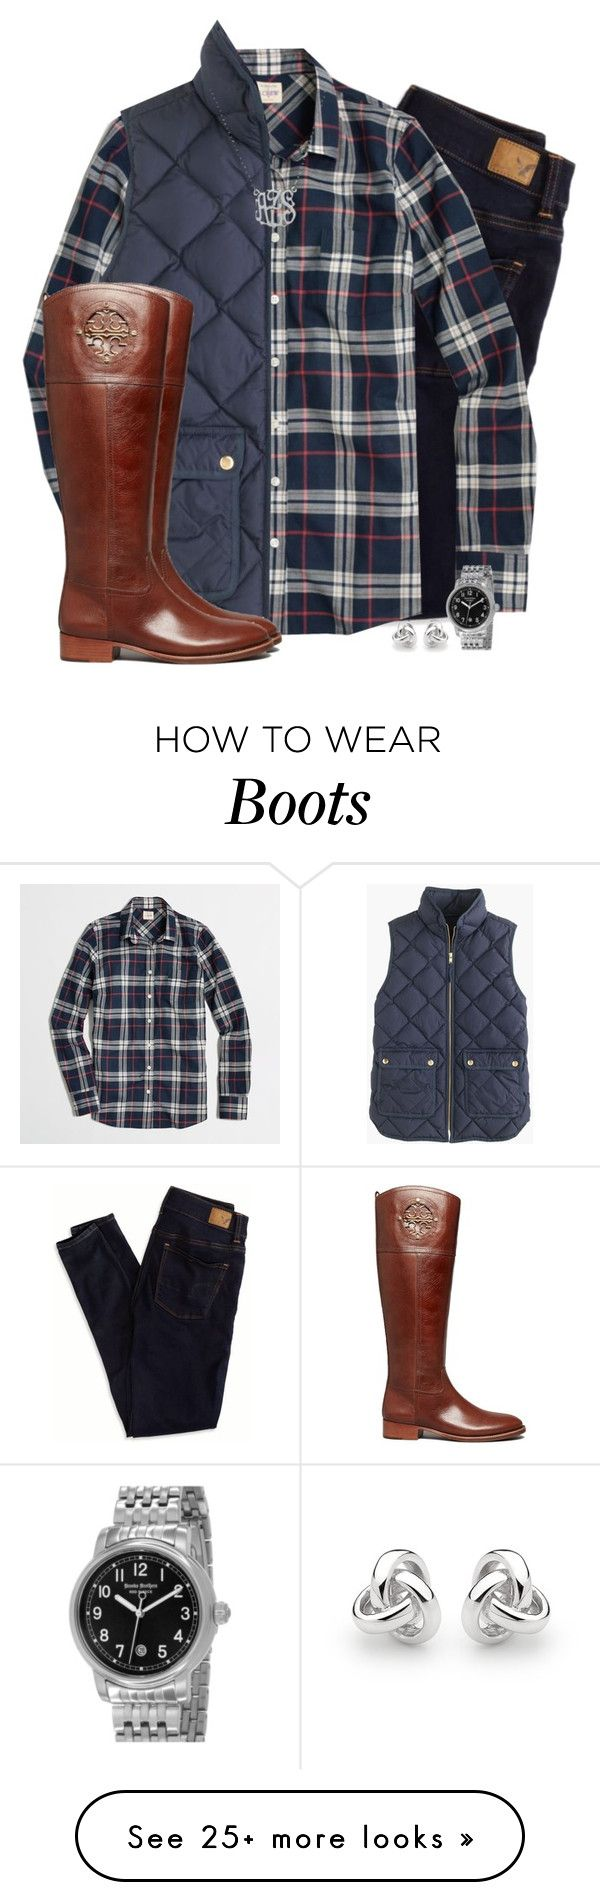 """J.crew plaid shirt & quilted vest with Tory boots"" by steffiestaffie on Polyvore featuring mode, American Eagle Outfitters, J.Crew, Tory Burch, Georgini, Brooks Brothers et Danielle Stevens Jewelry"